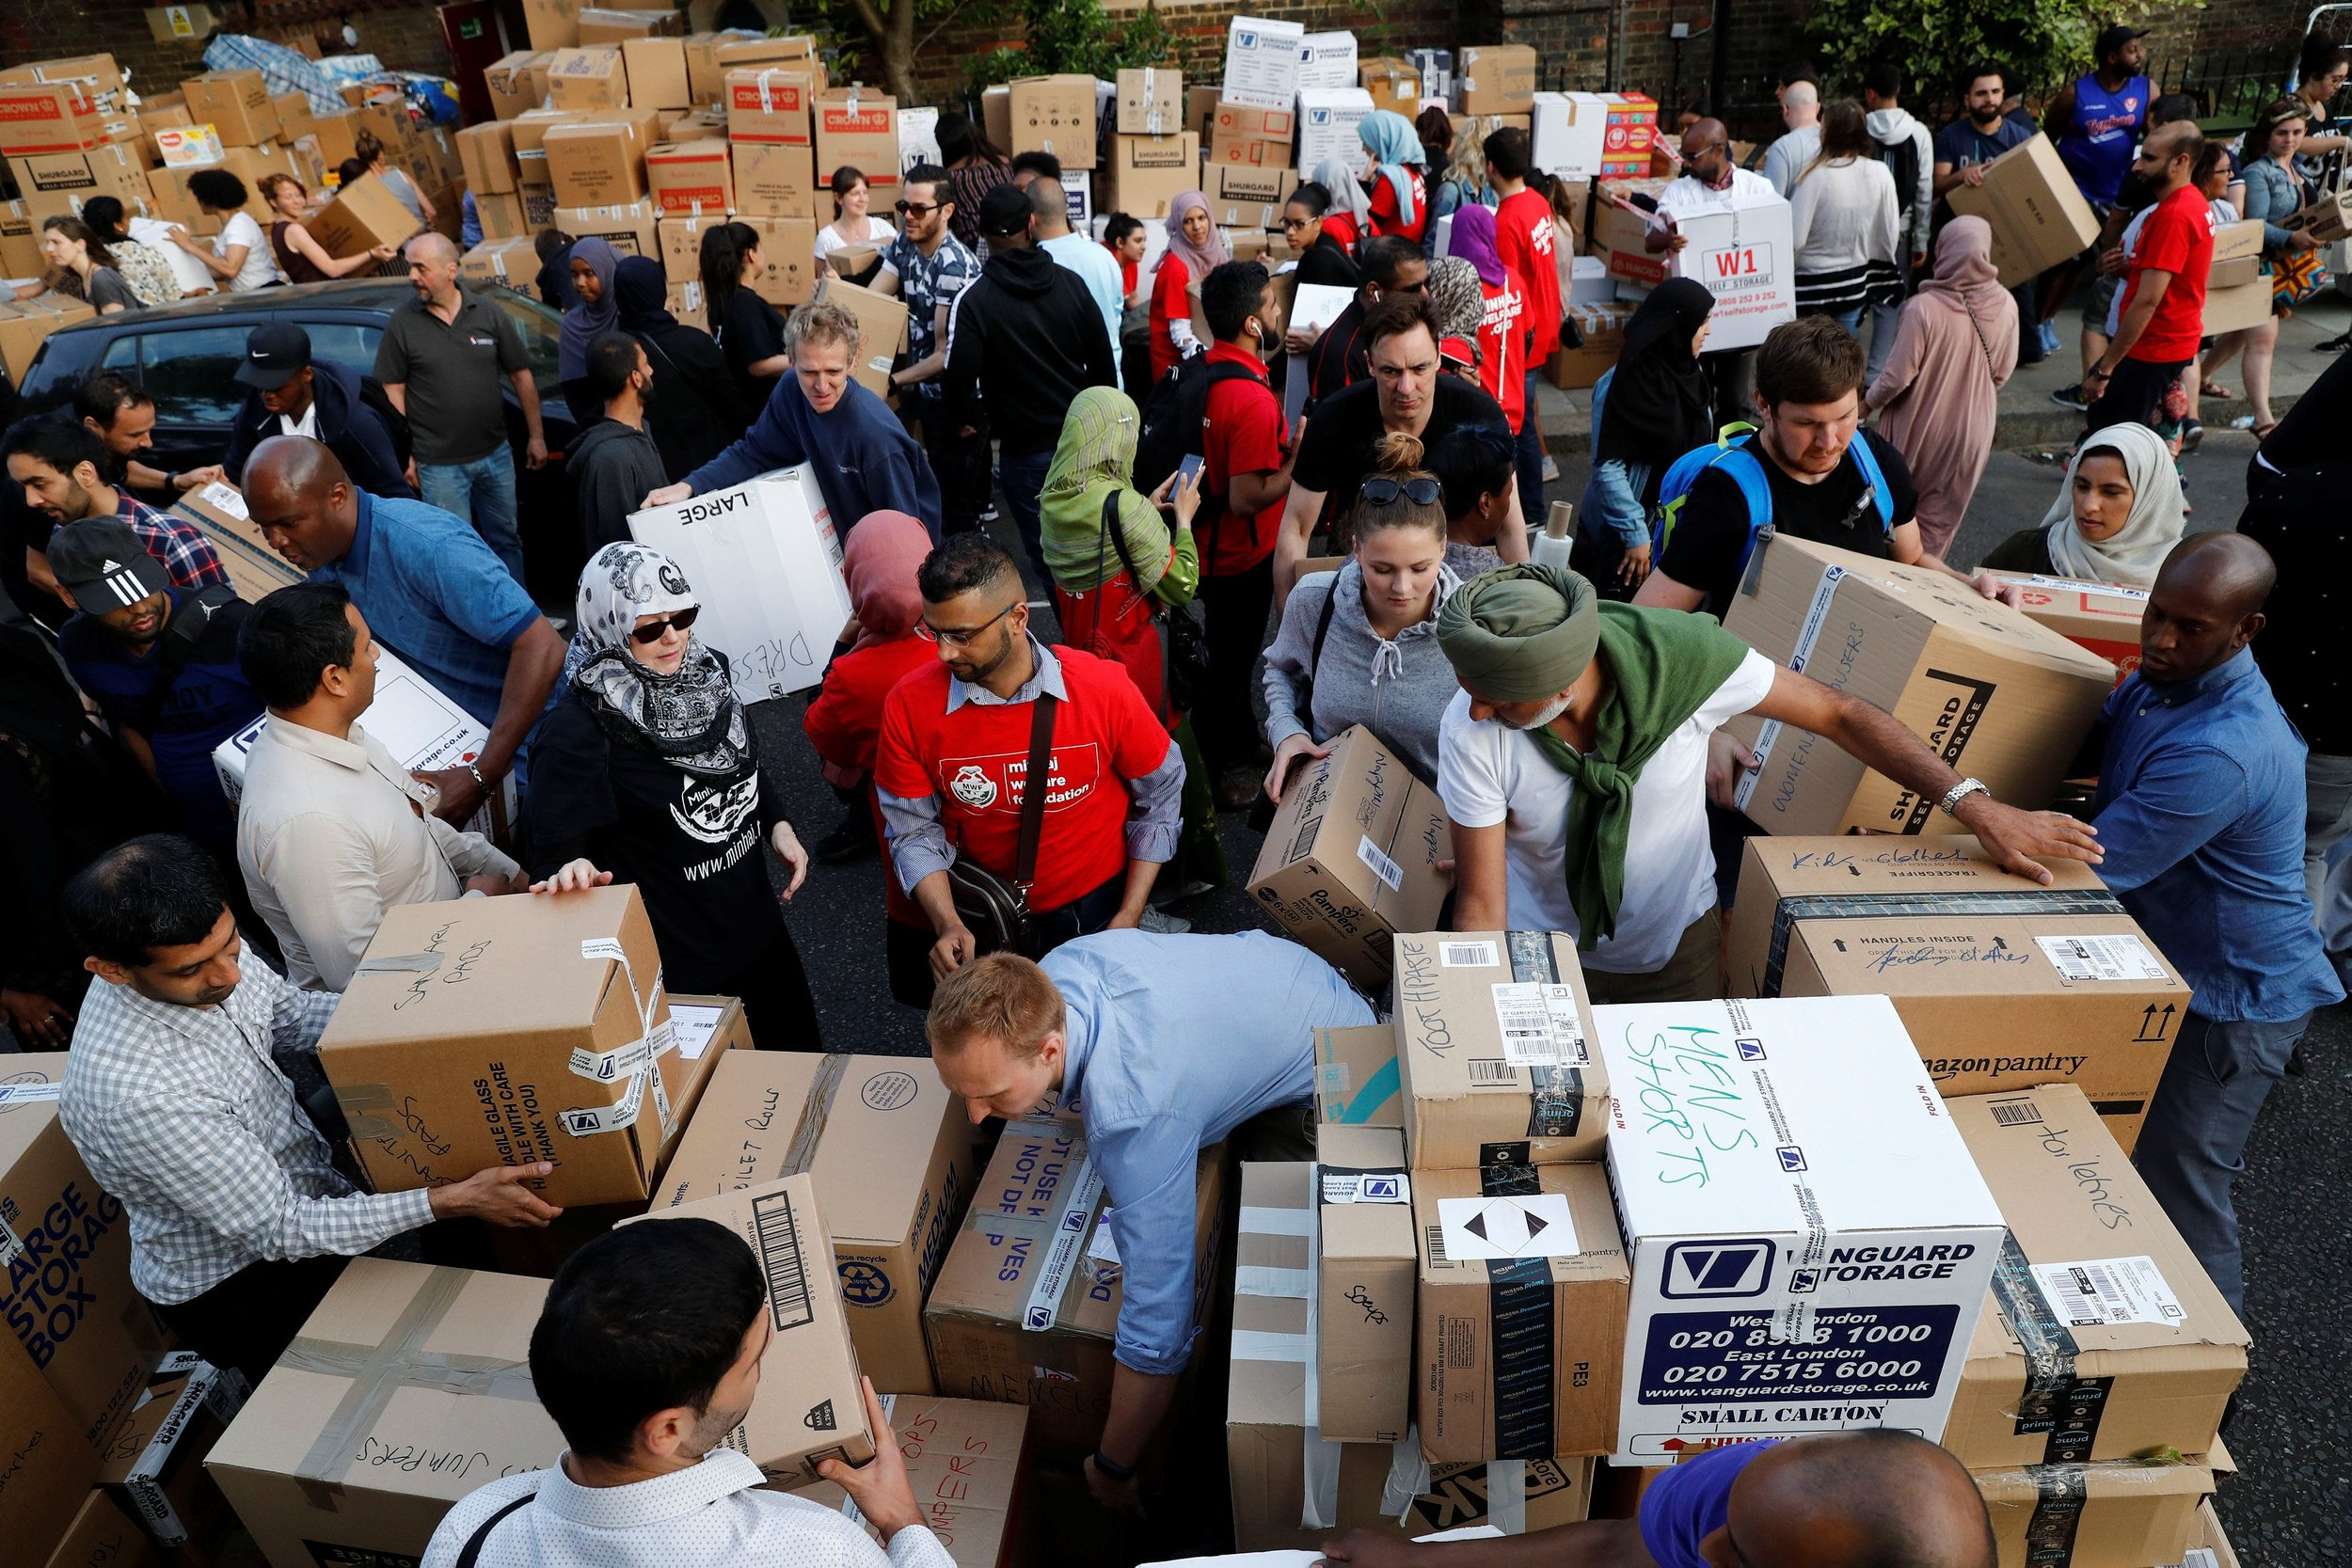 LEAD-1-Grenfell-charities-Volunteers-prepare-supplies-for-people-affected-by-the-Grenfell-Tower-block-in-north-Kensington-West-London-June-15.jpg